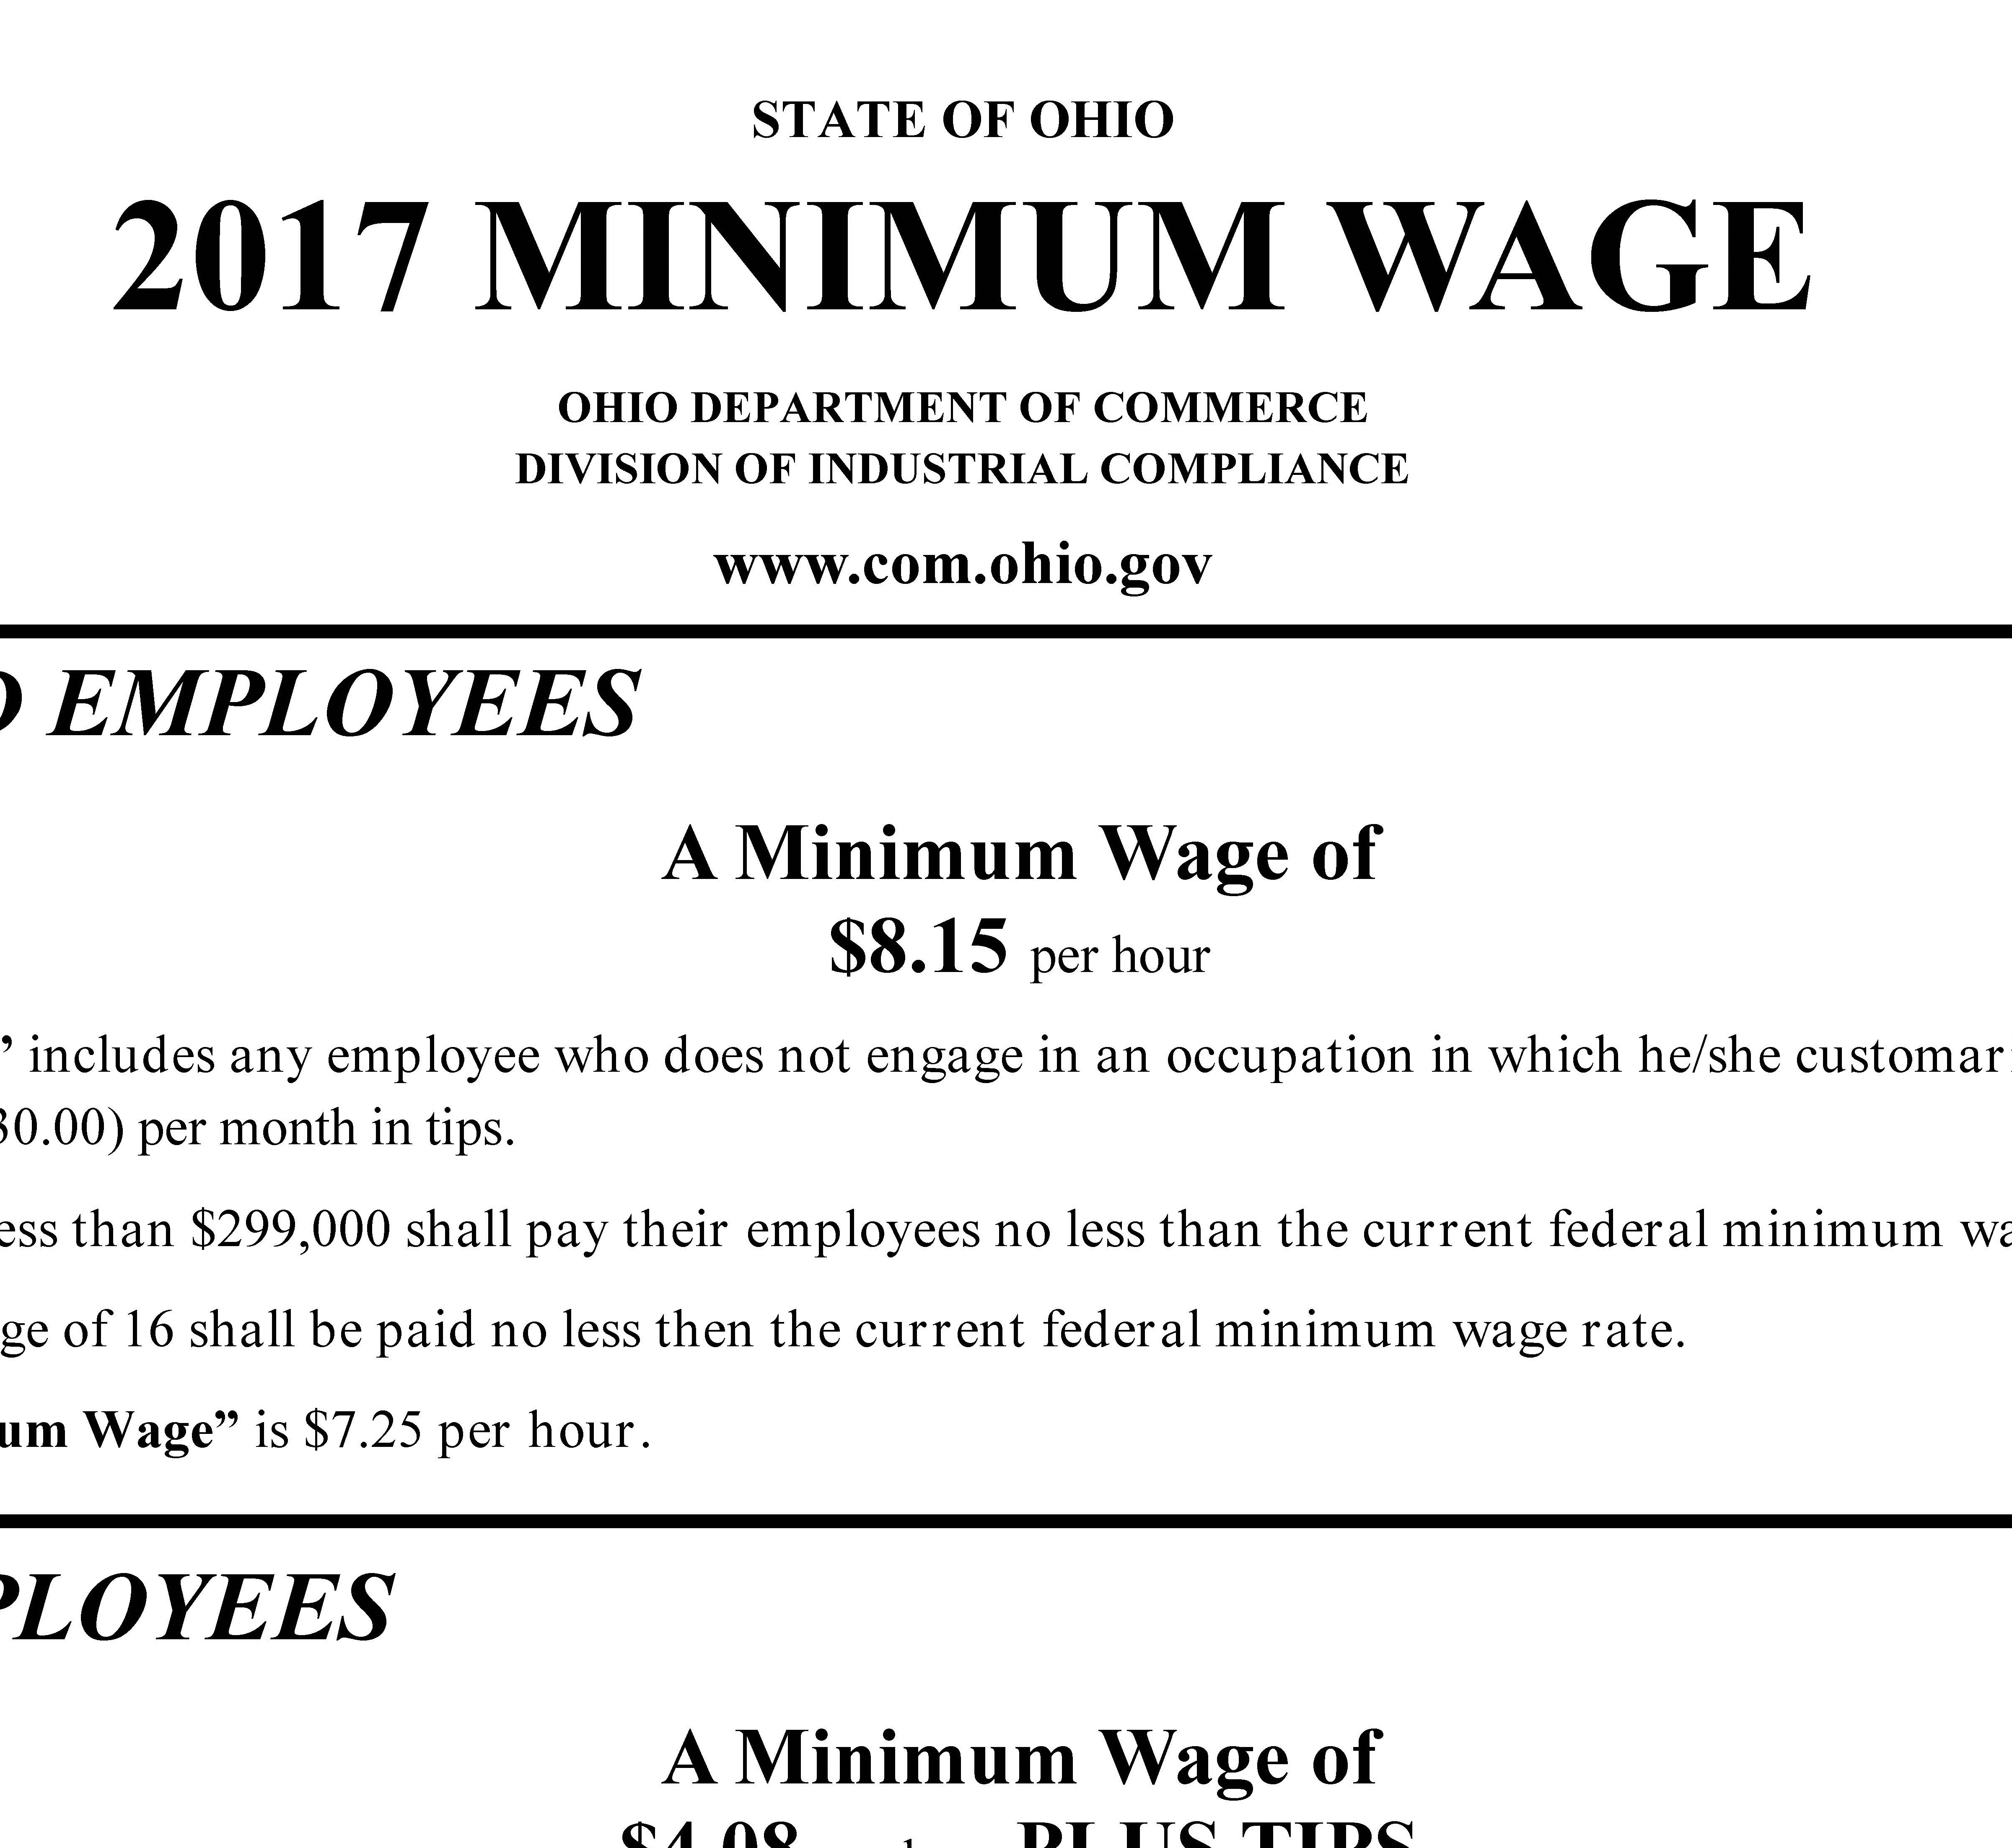 the federal and state minimum wage Small businesses must comply with certain state and federal minimum wage laws these laws ensure workers receive fair pay while employed and seek to provide equal opportunity for all workers who seek employment.